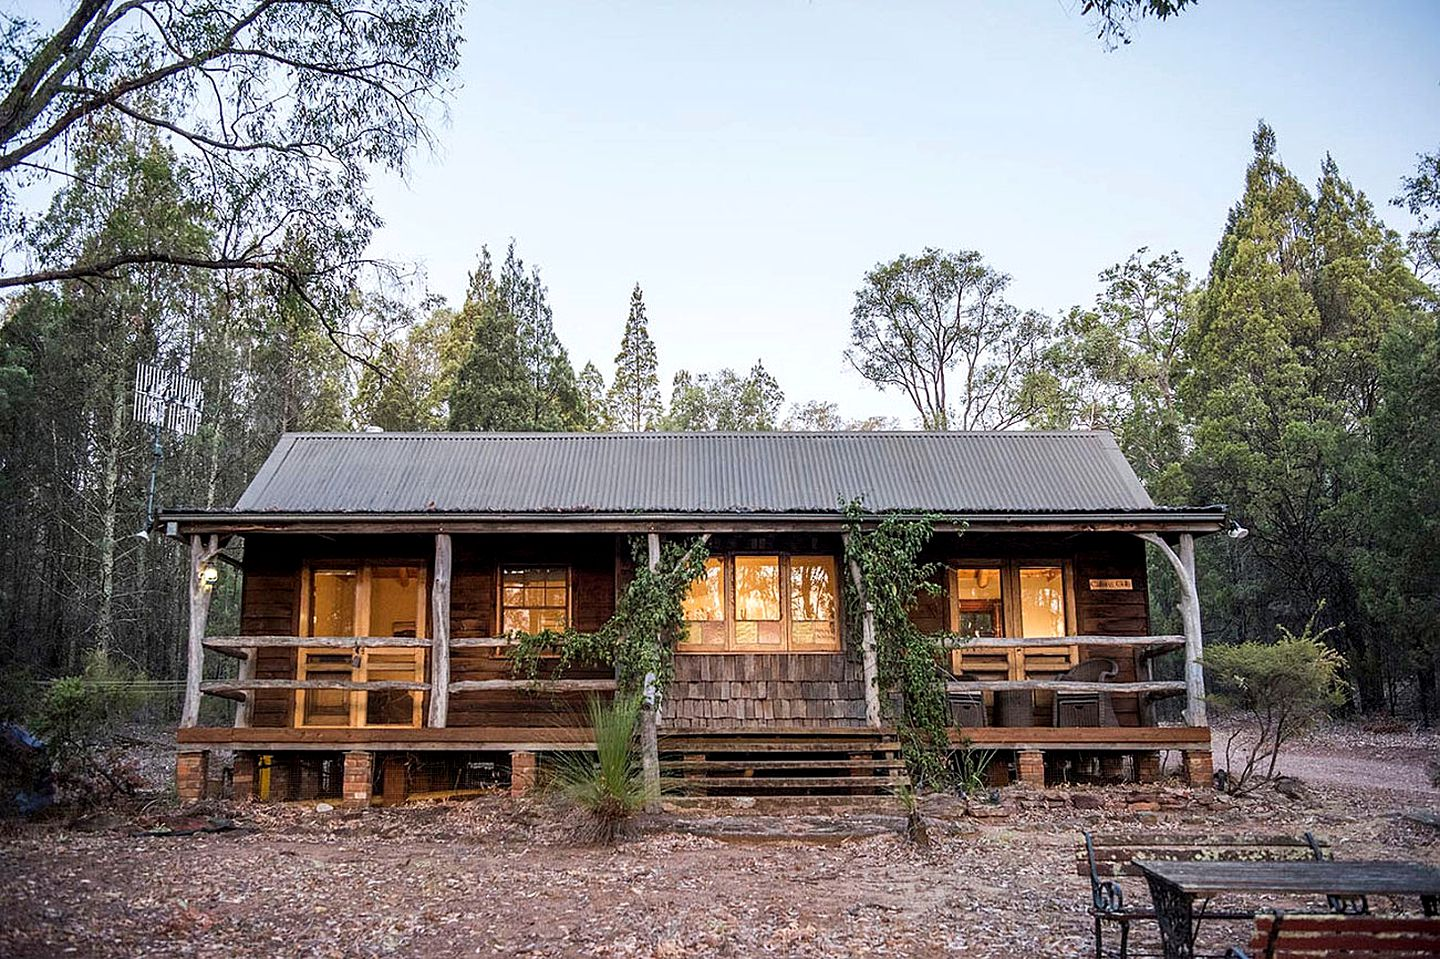 This lovely little NSW cottage is perfect for romantic getaways